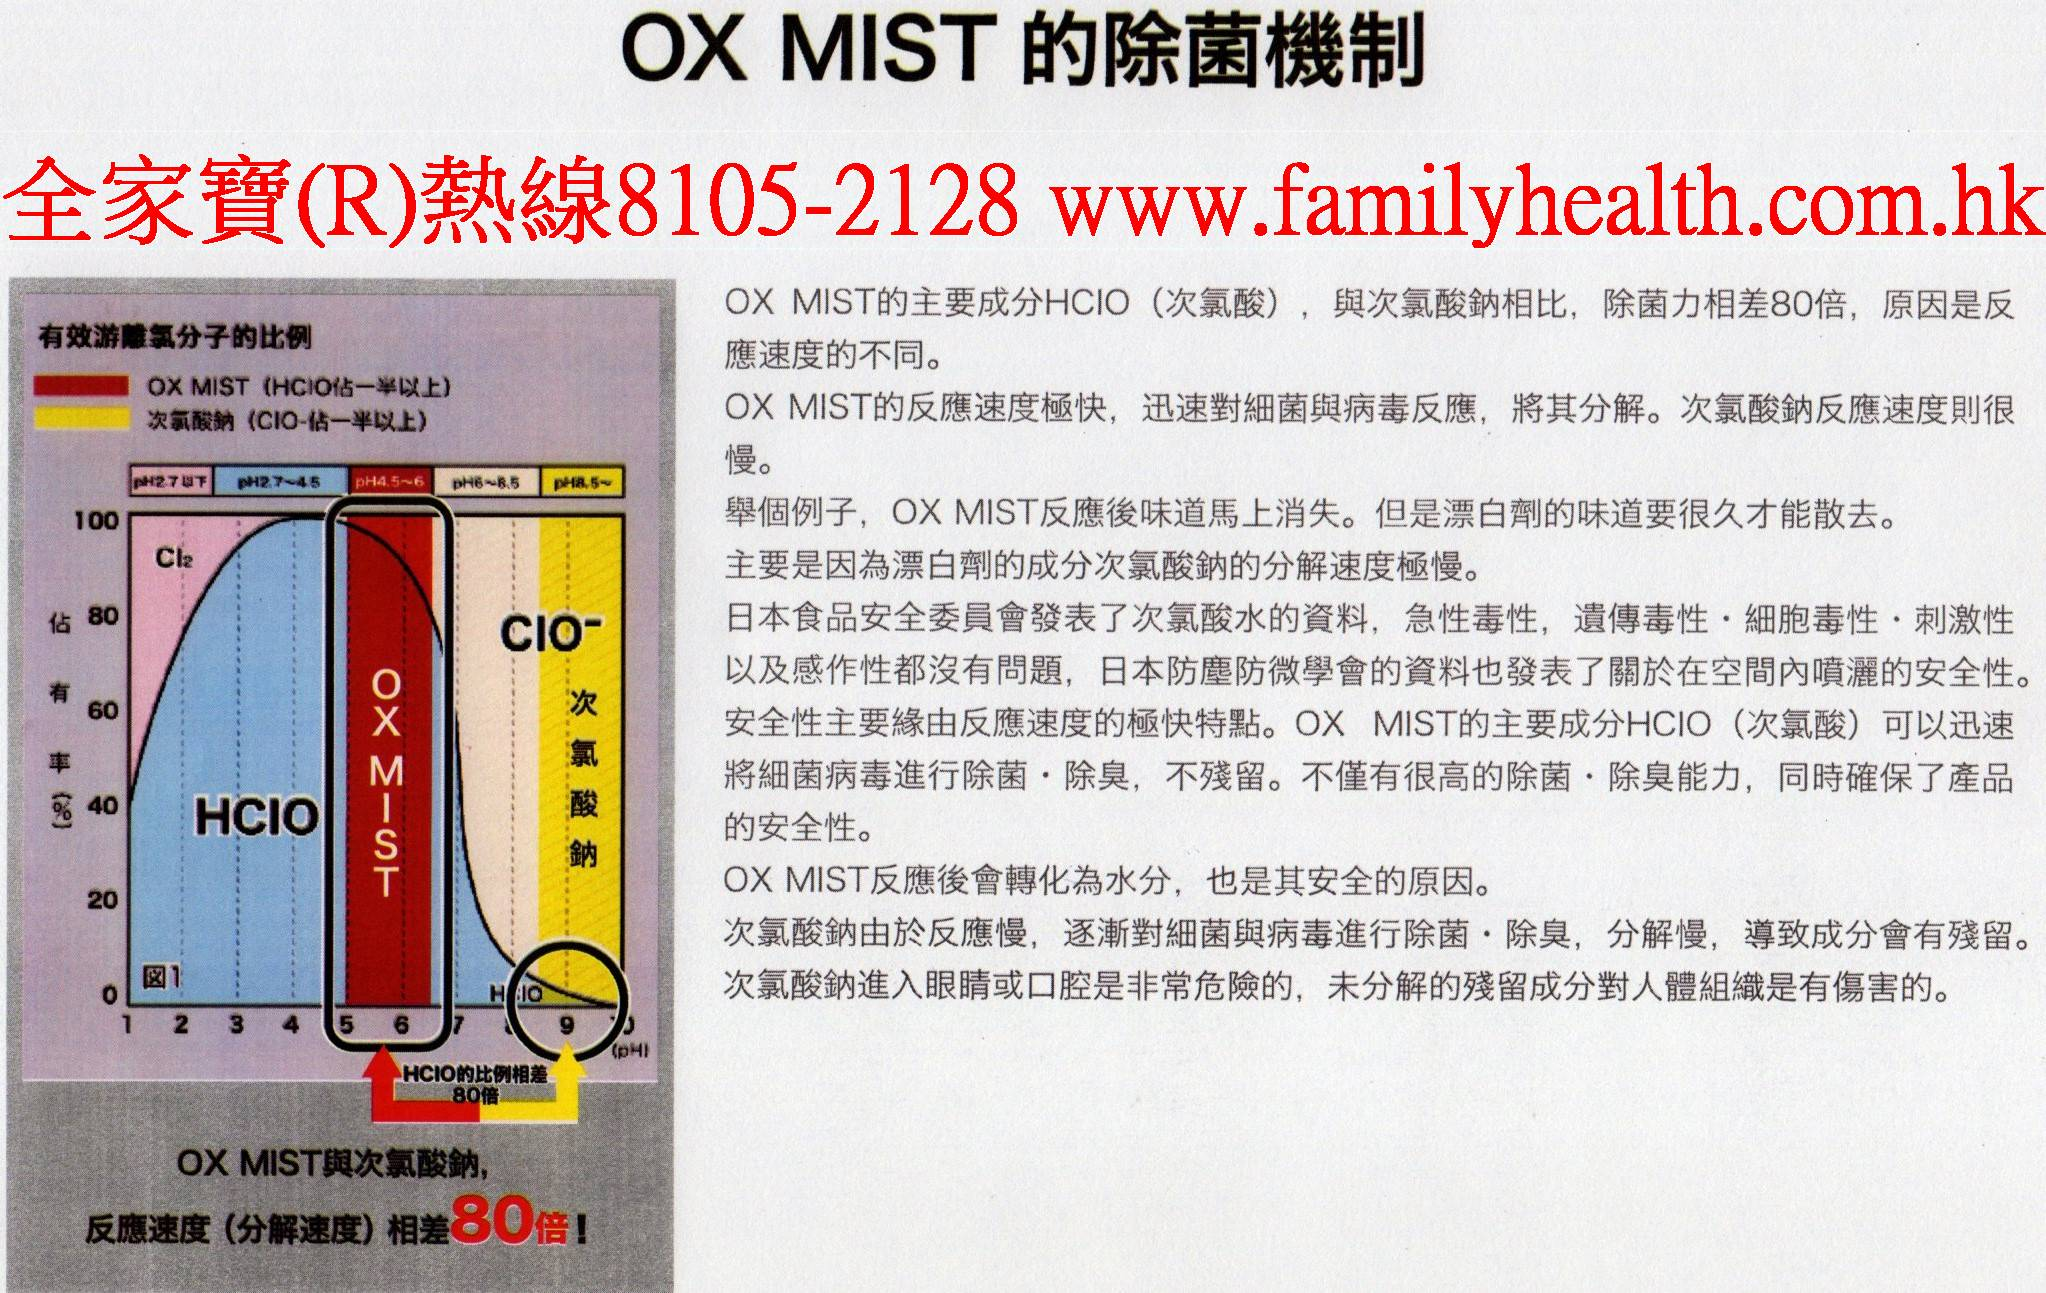 http://www.familyhealth.com.hk/files/full/1083_4.jpg